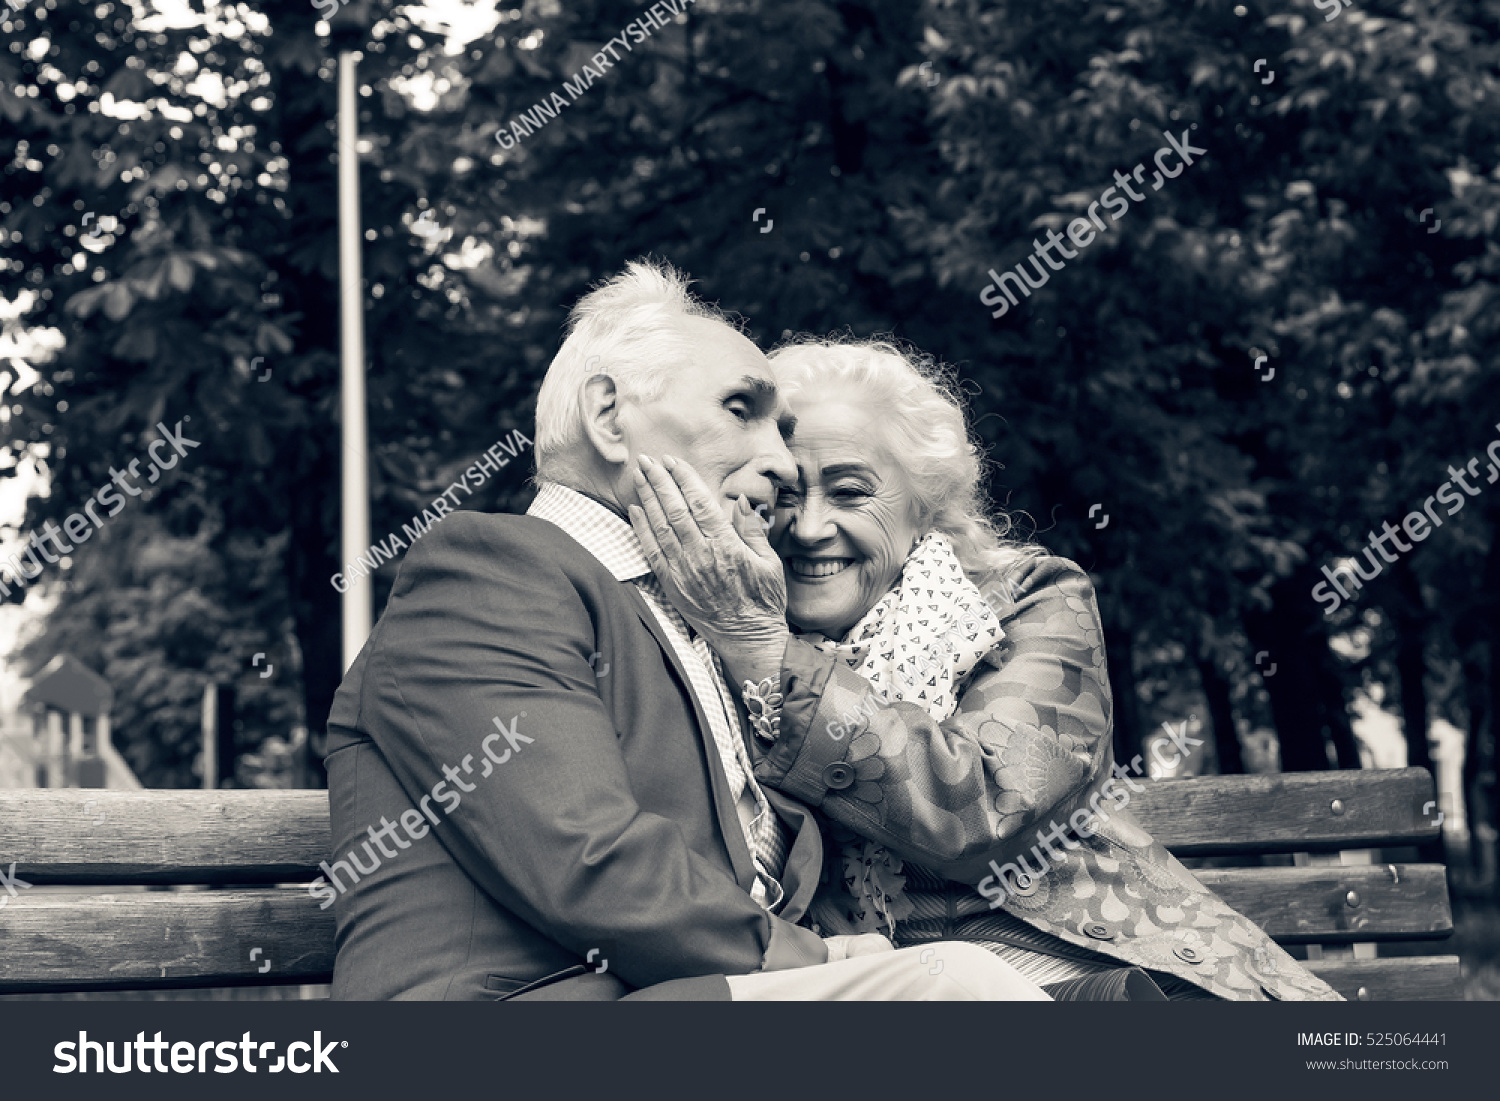 Black And White Photo Elderly Family Couple Talking On A Bench In City Park